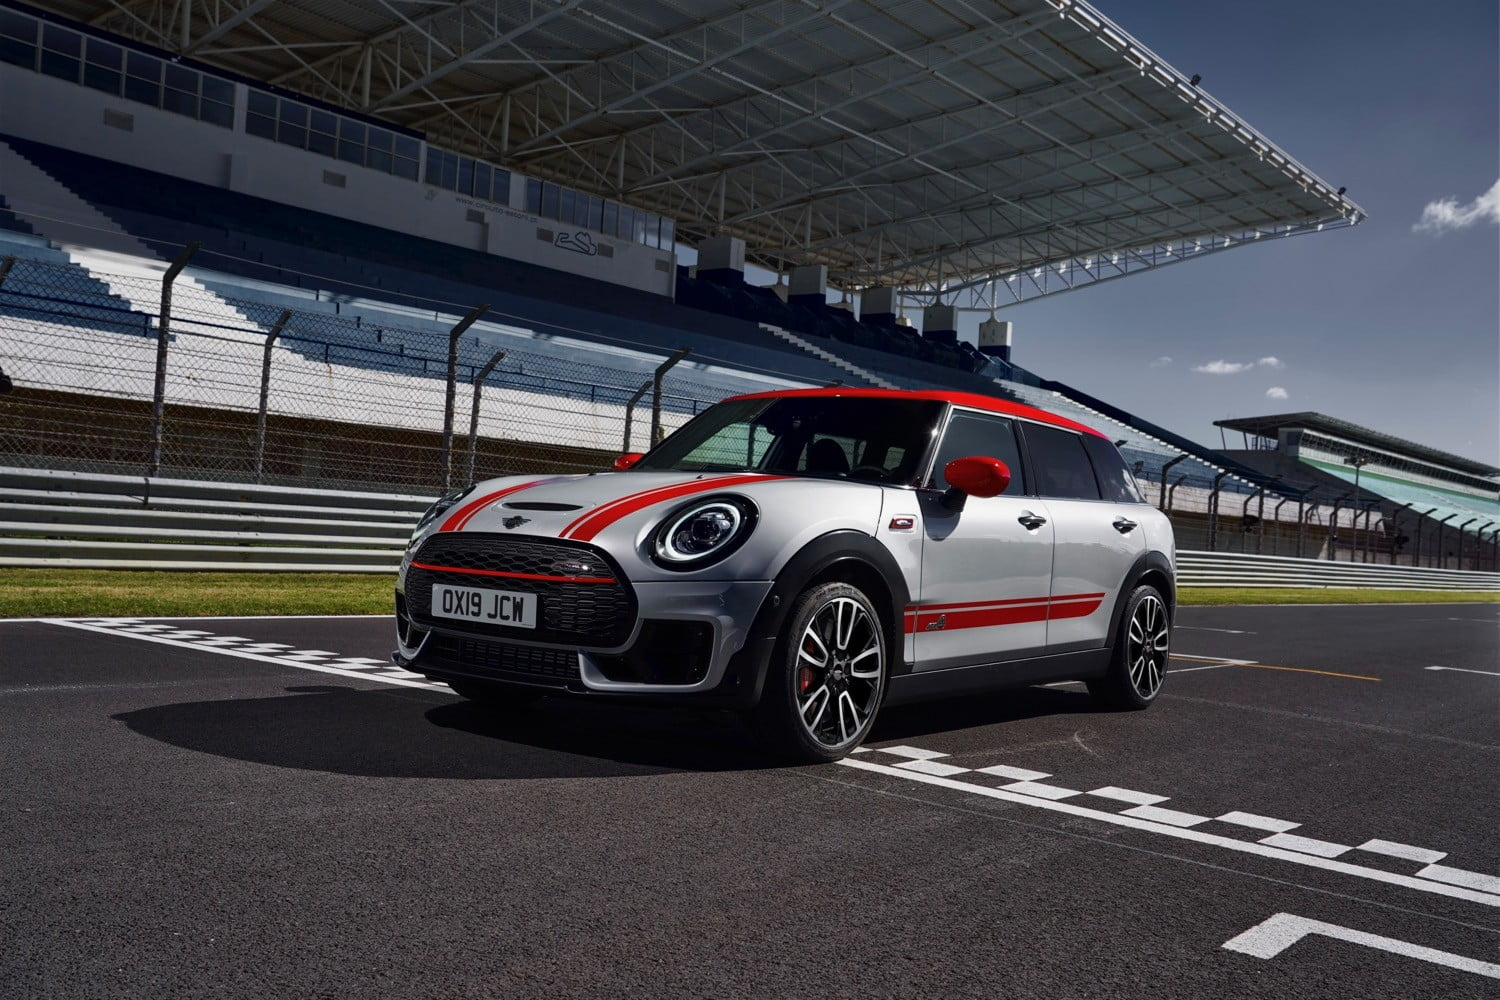 2020 Mini Lineup Sees Price Increases Across the Board